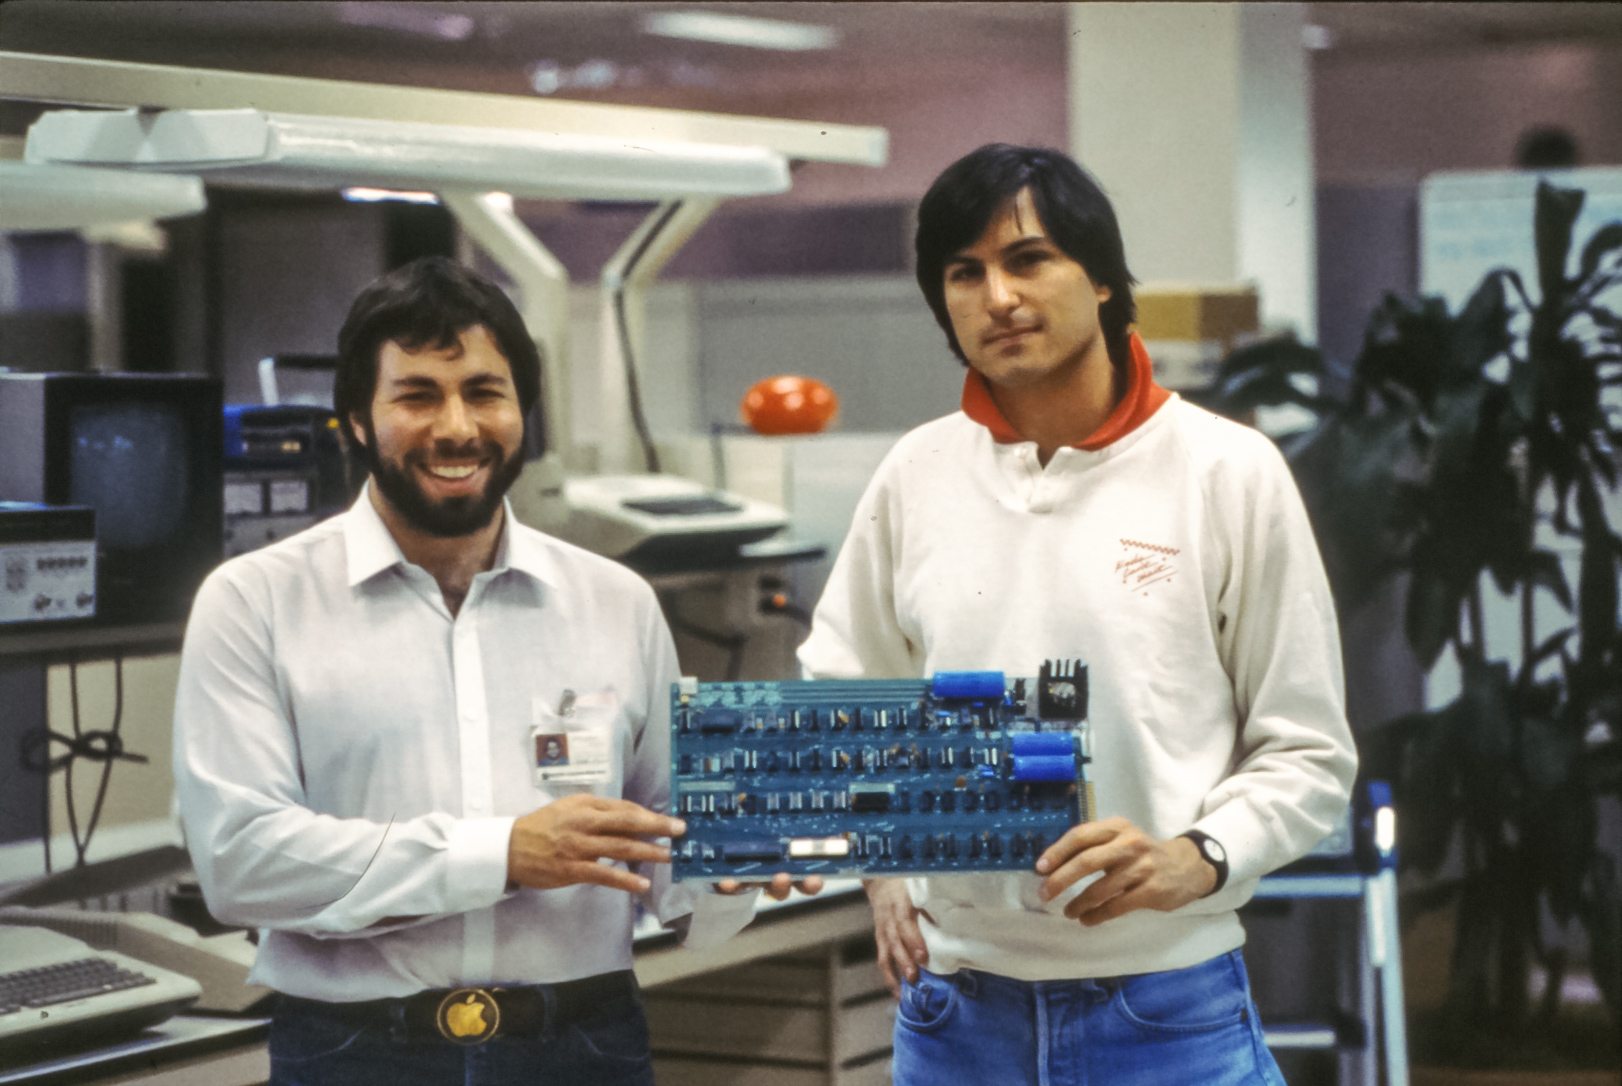 Steve Wozniak and Steve Jobs holding an Apple-1 computer board